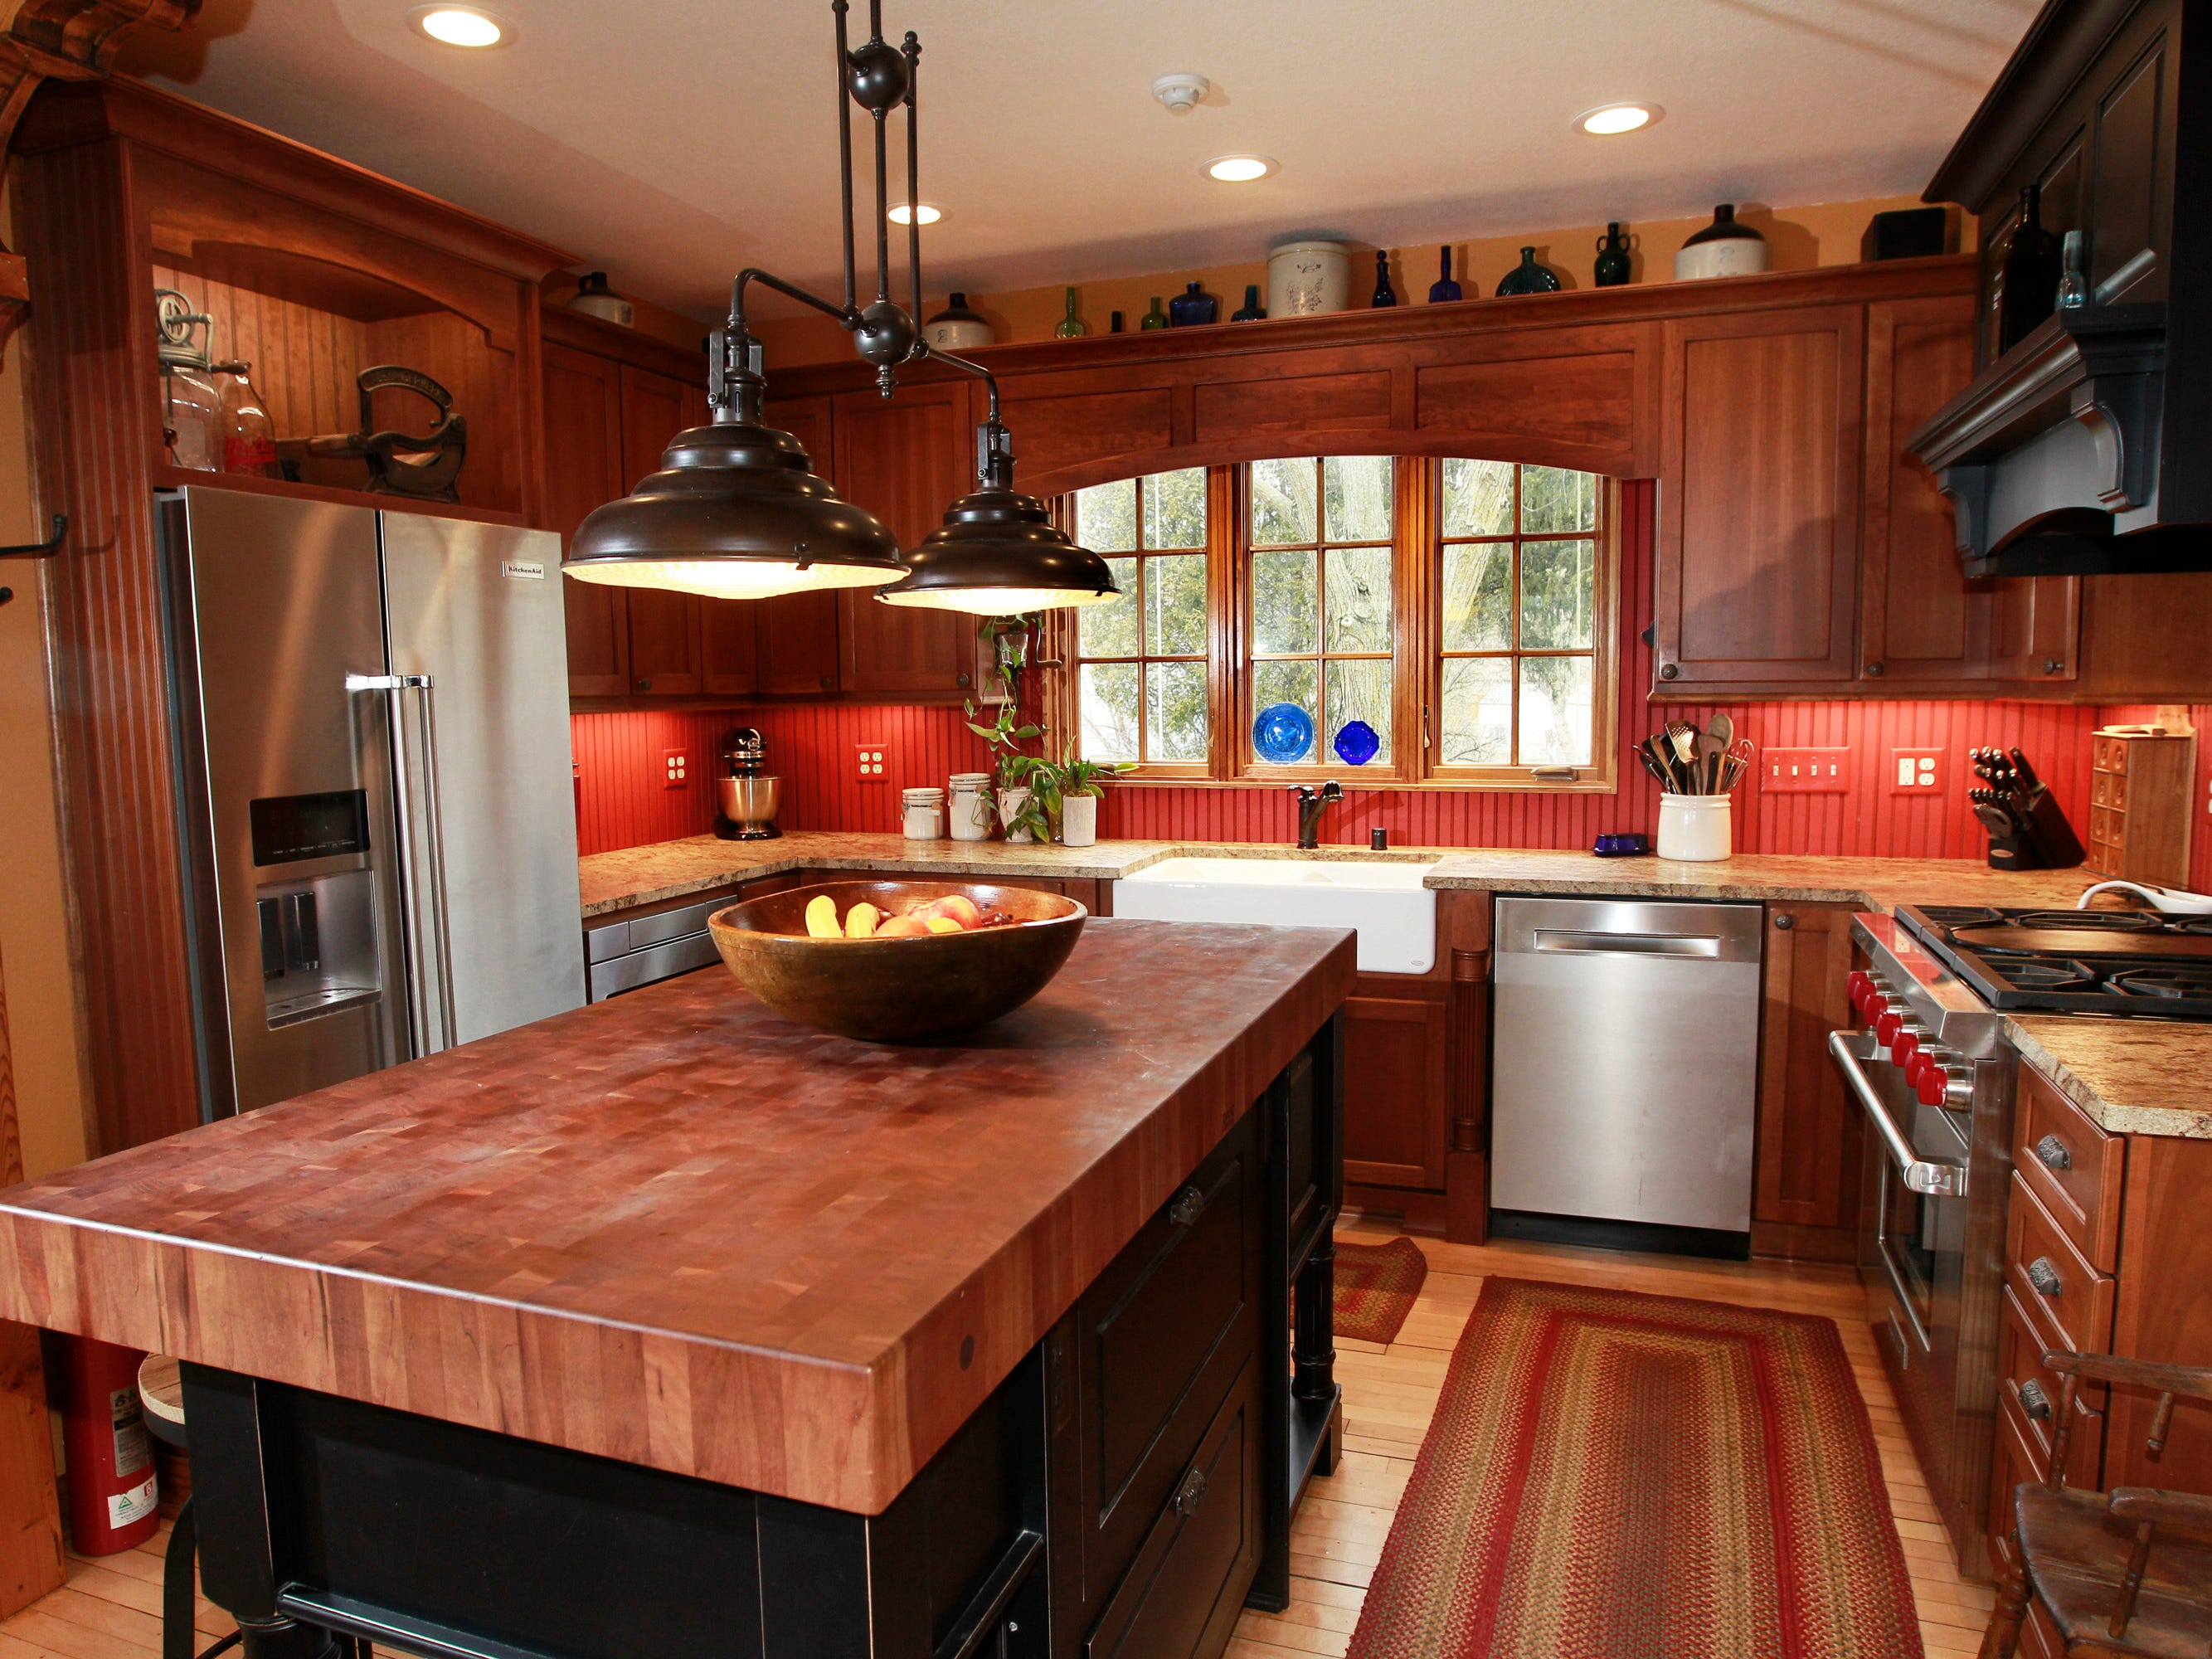 The kitchen was among the major renovations in the home. The island features an end-grain cherry wood top.